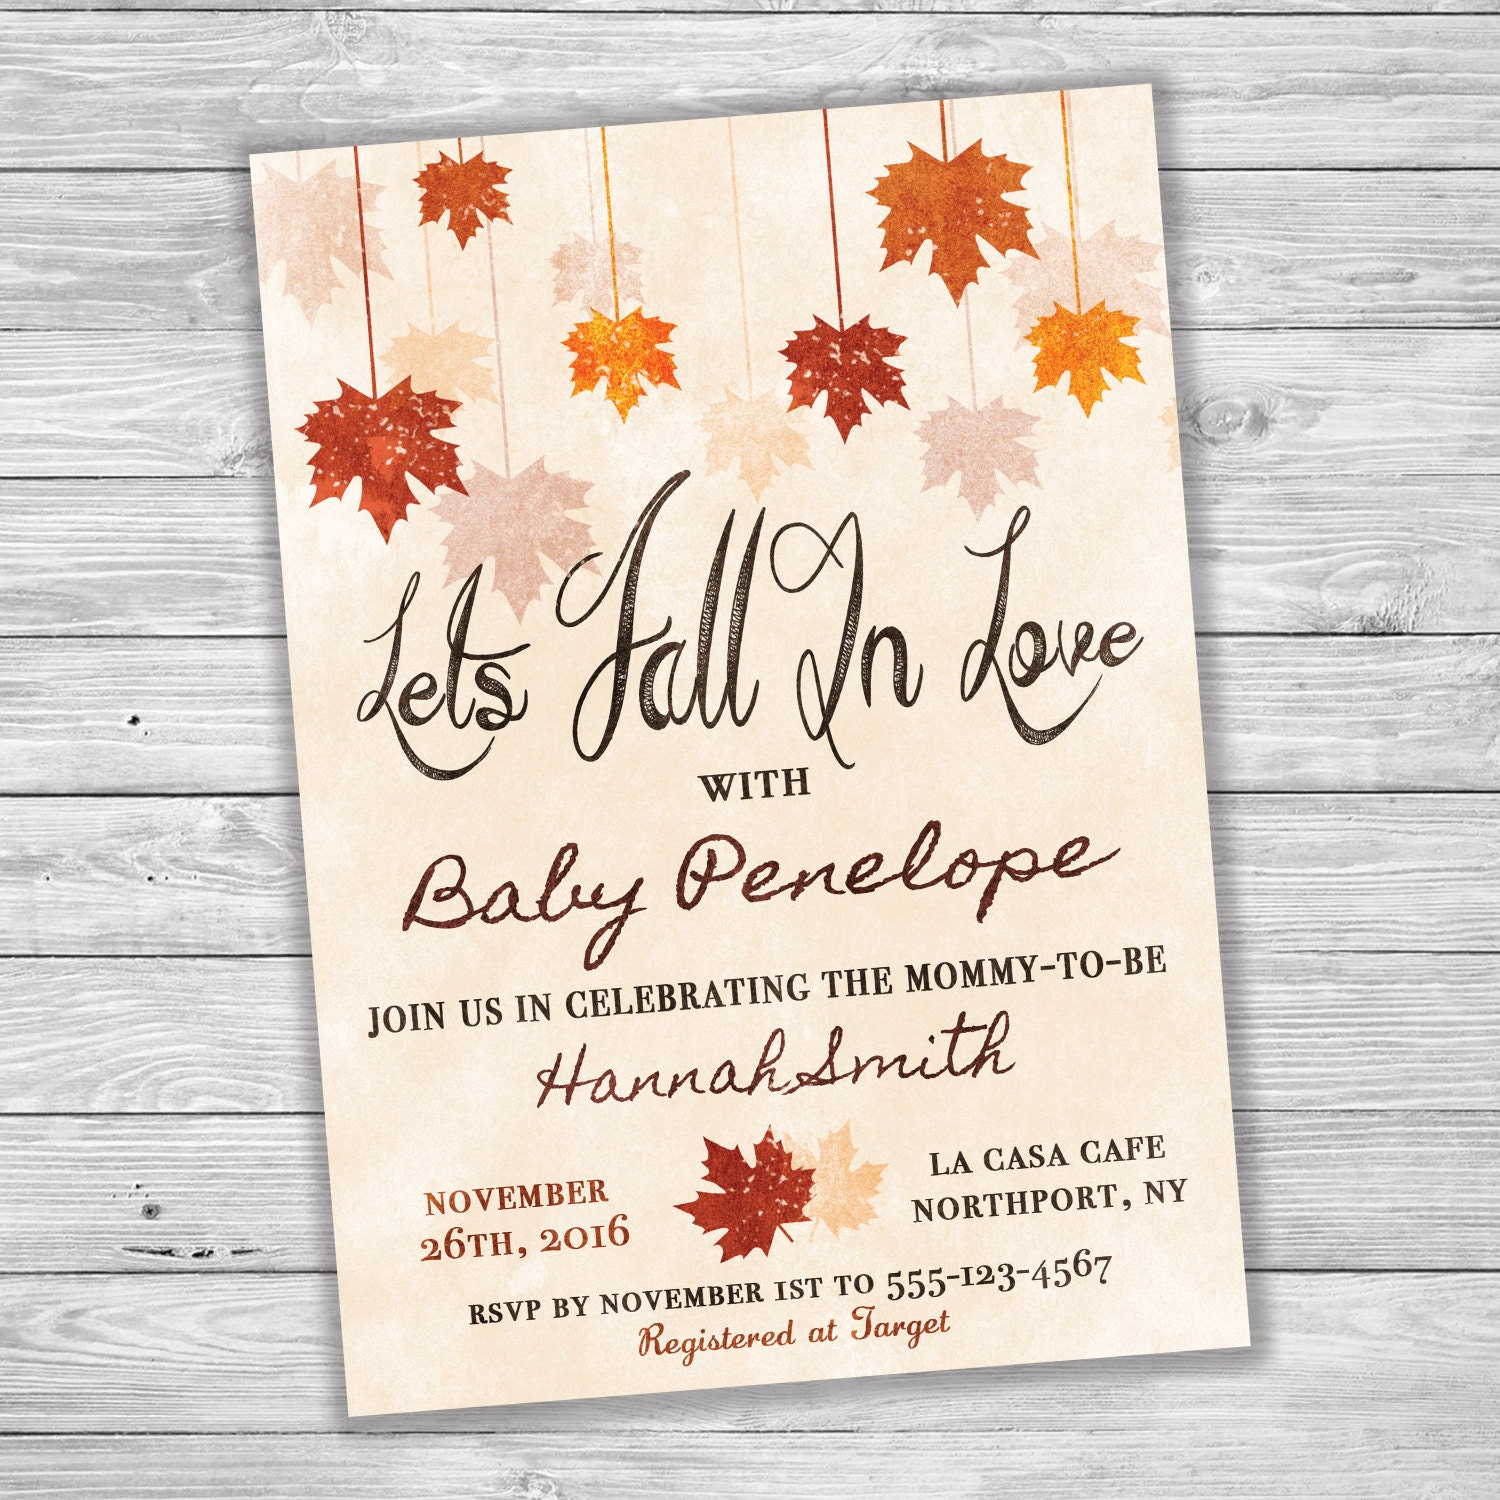 Falling Leaves Let\'s Fall In Love Baby Shower Invitation